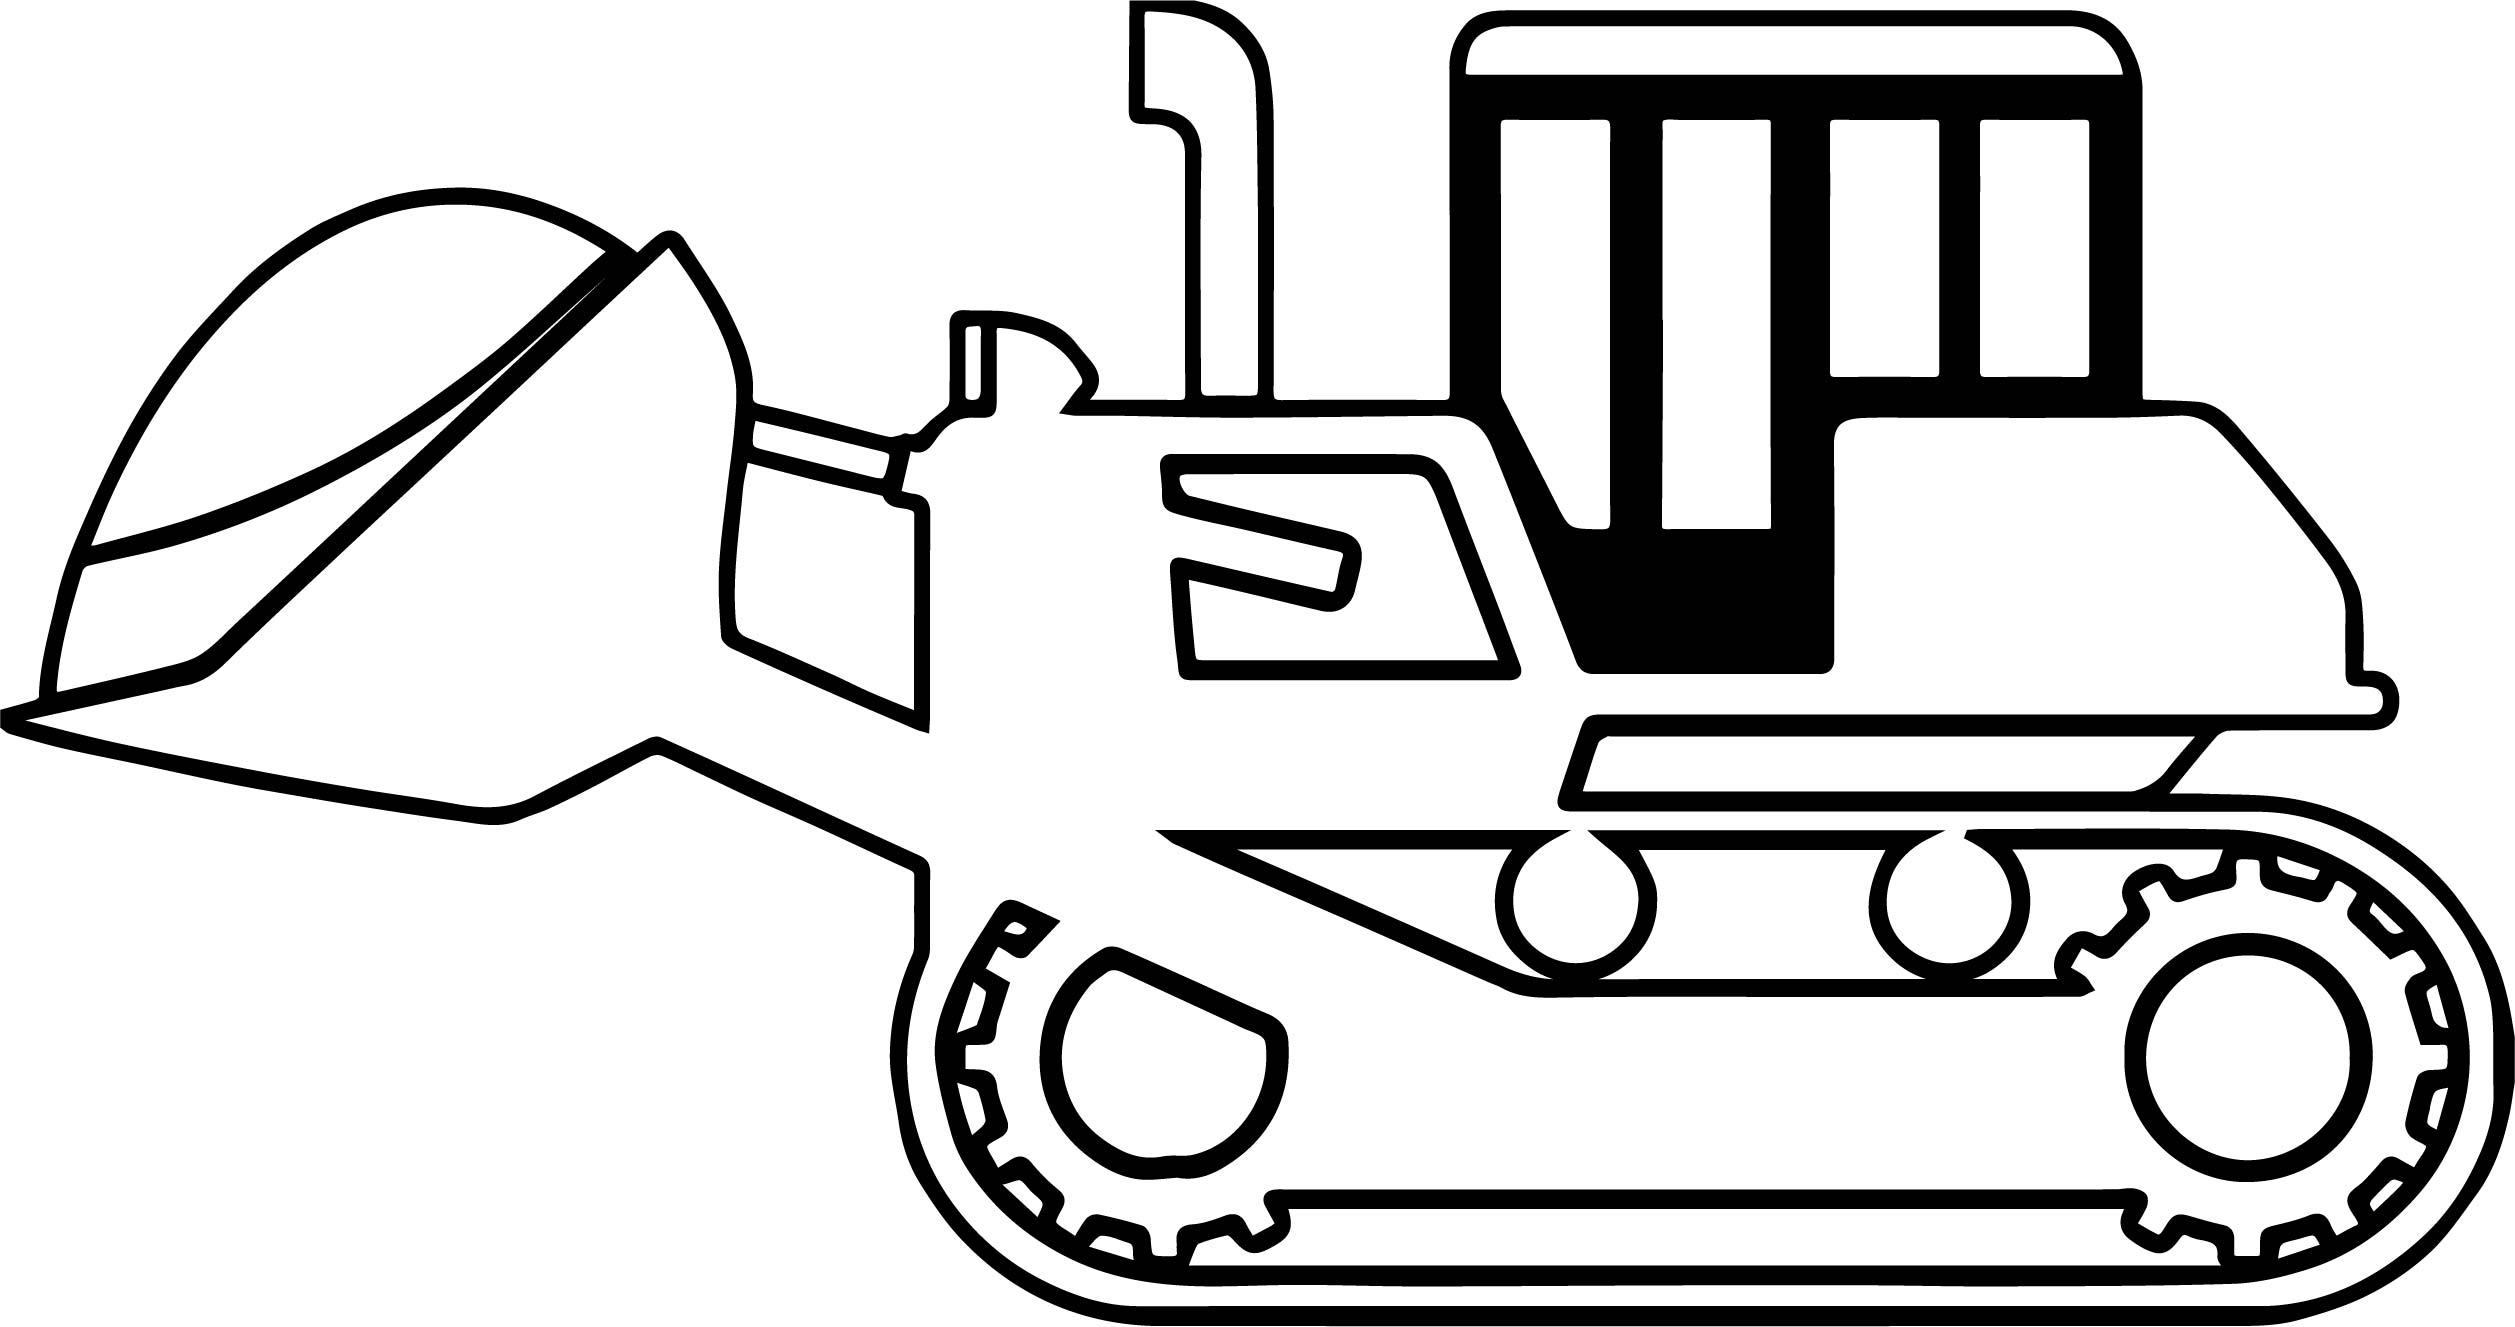 Bulldozer Side Sand Coloring Page | Wecoloringpage